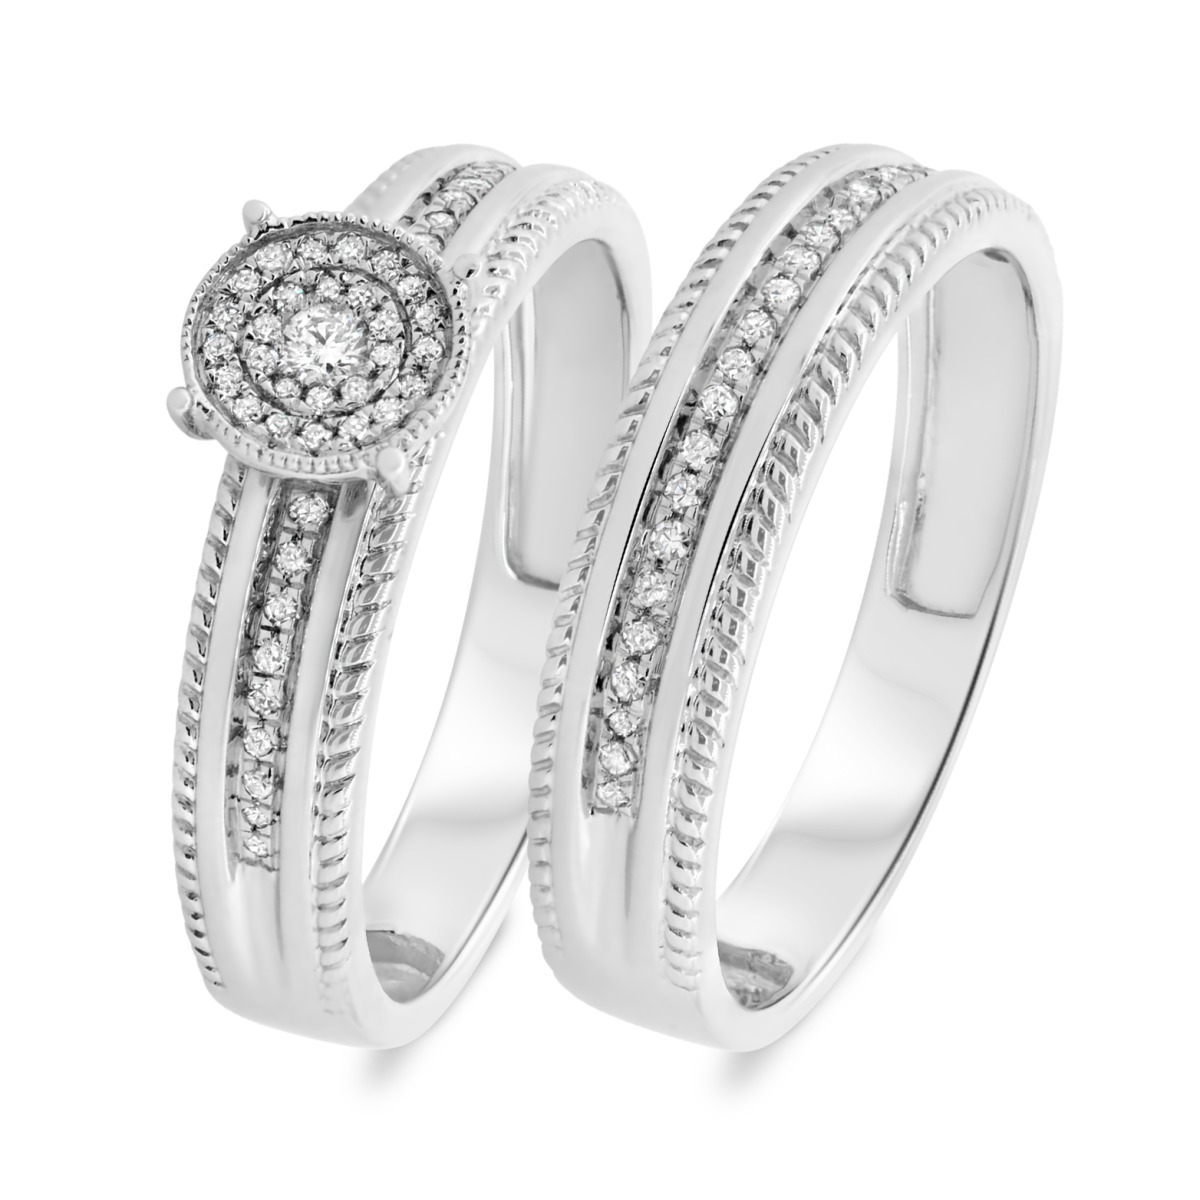 1/5 CT. T.W. Diamond Matching Bridal Ring Set 14K White Gold